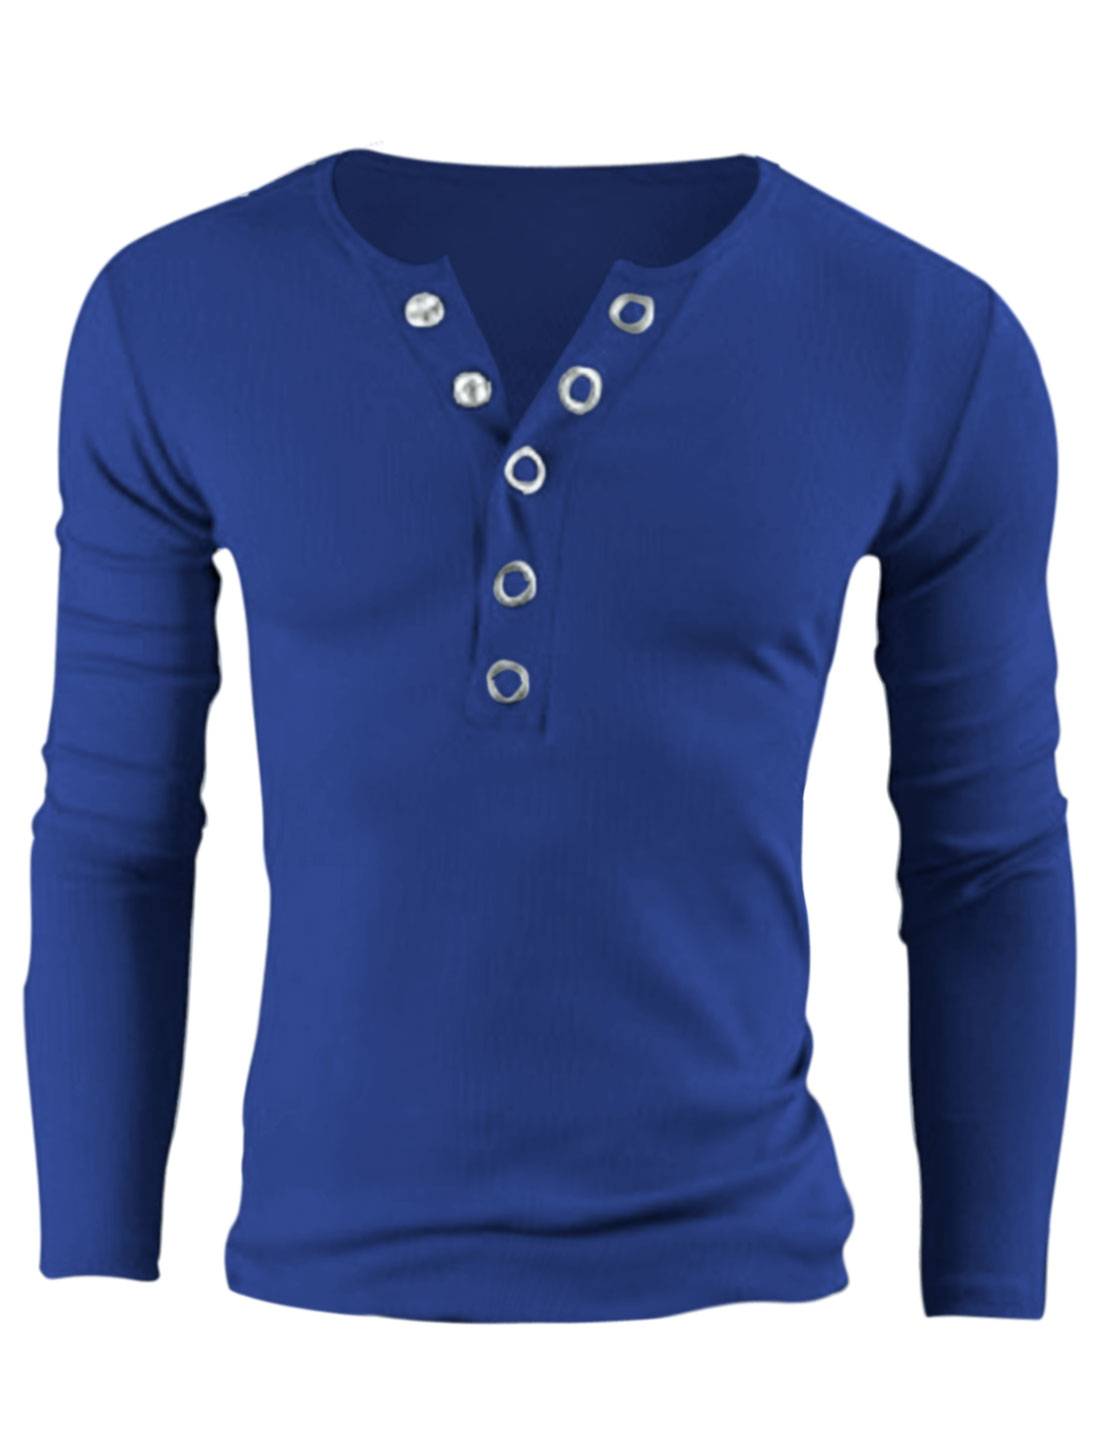 Men Metal Snap Button Wide Placket Long Sleeves Slim Fit Henley Shirt Royal Blue M